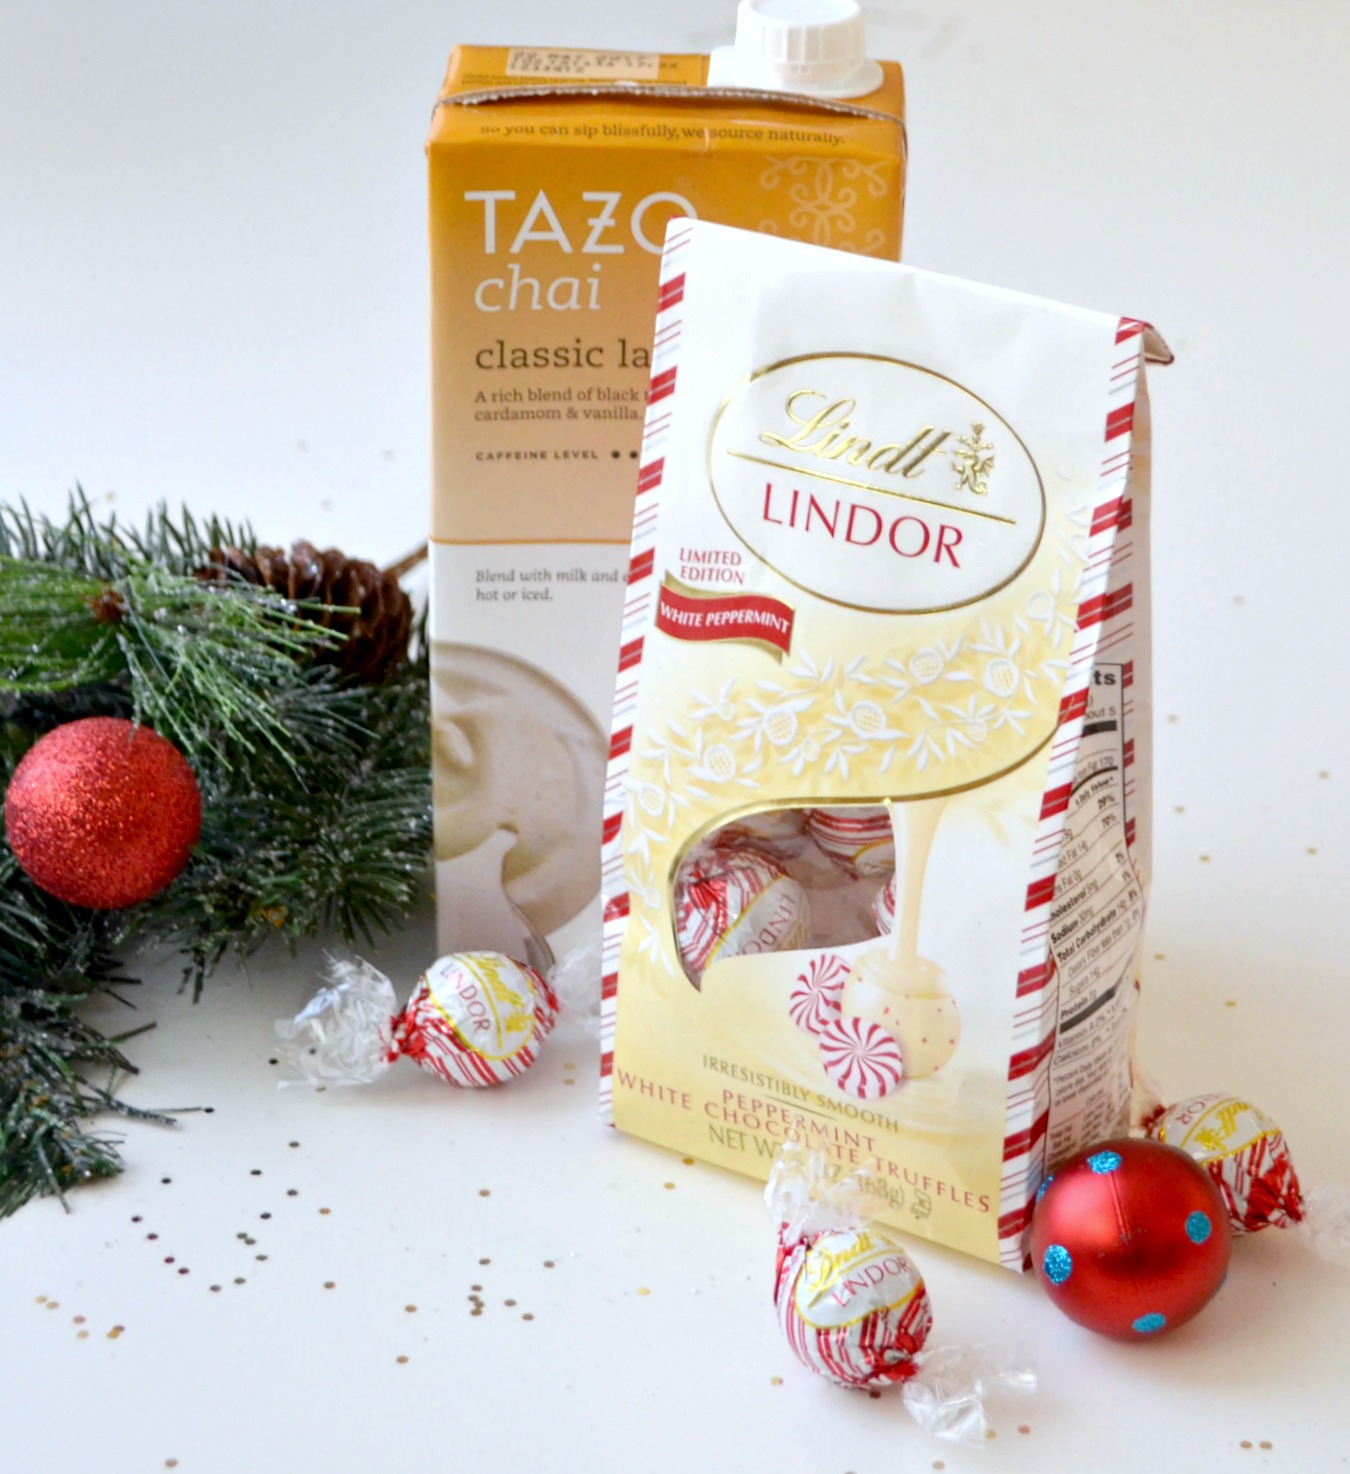 Tazo Chai Classic Latte and Lindt LINDOR Truffles